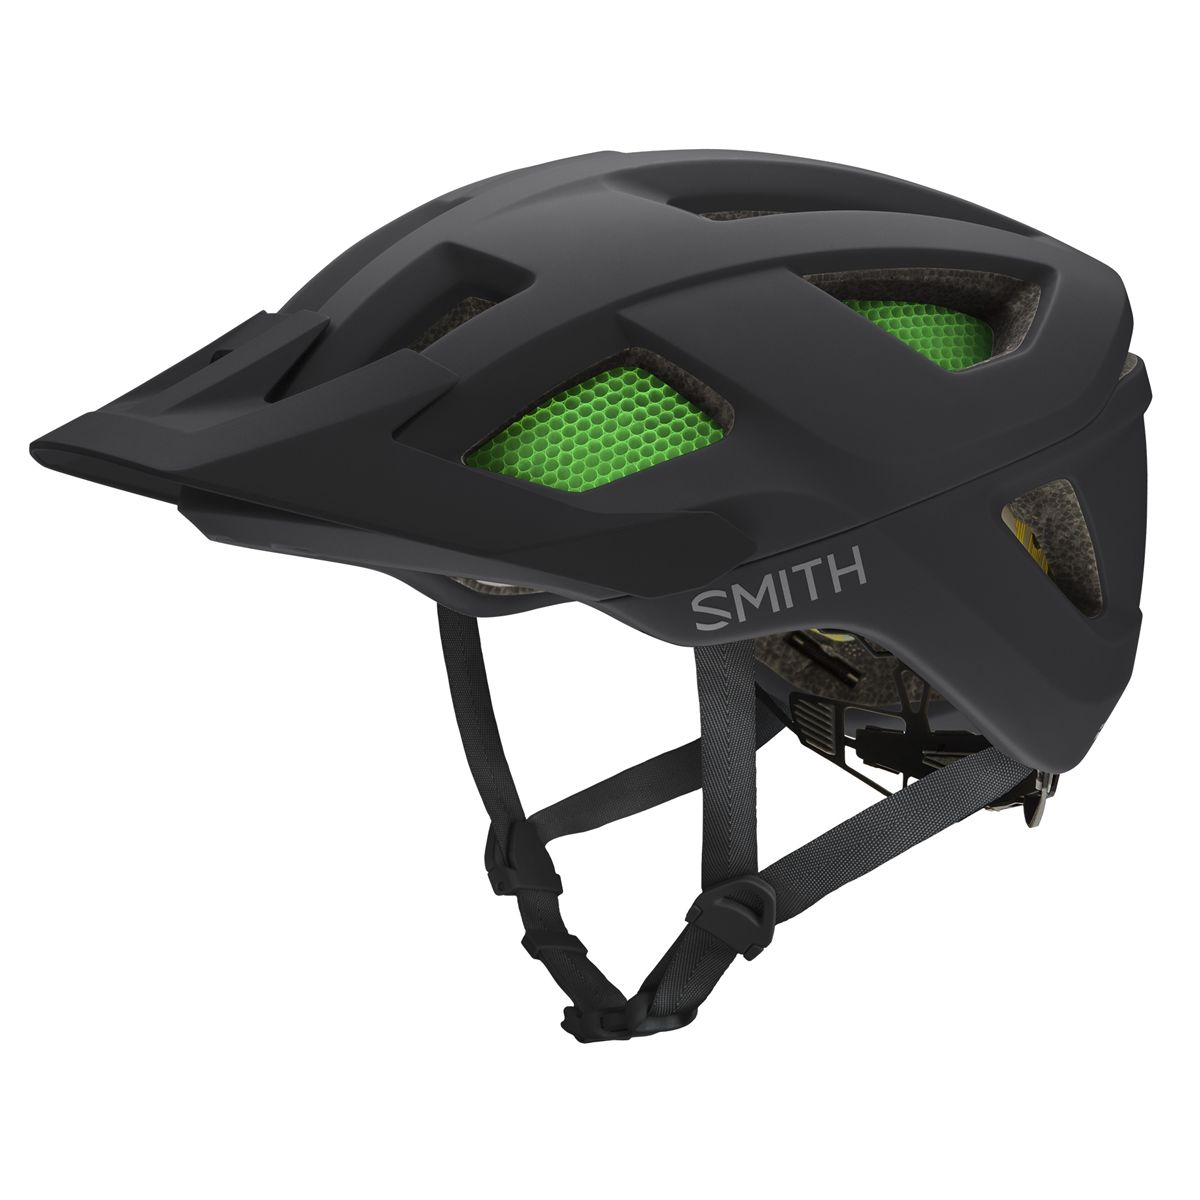 SESSION with MIPS bike helmet